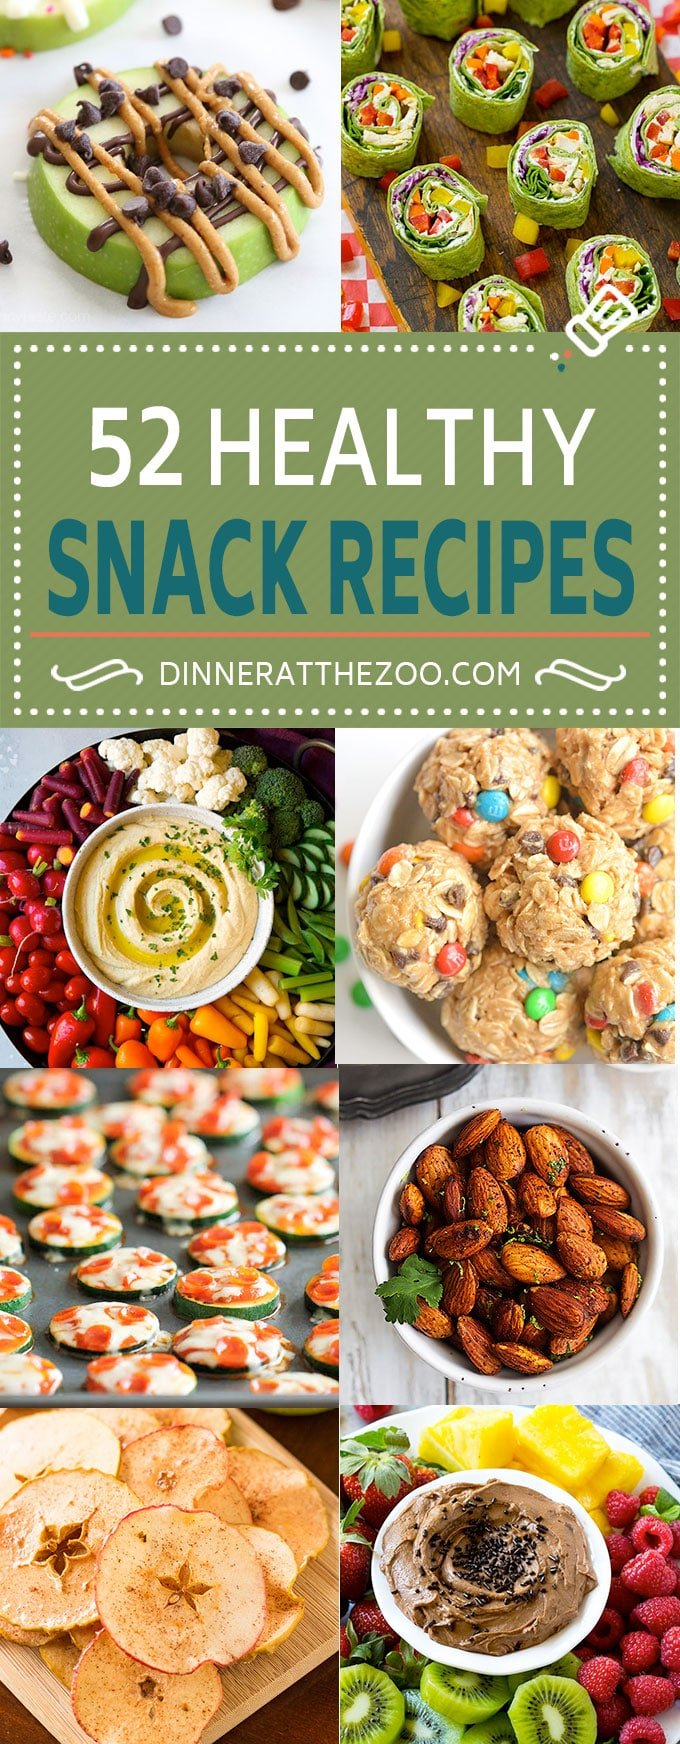 52 Healthy Snack Recipes | Snack Ideas #snacks #healthy #dinneratthezoo #cleaneating